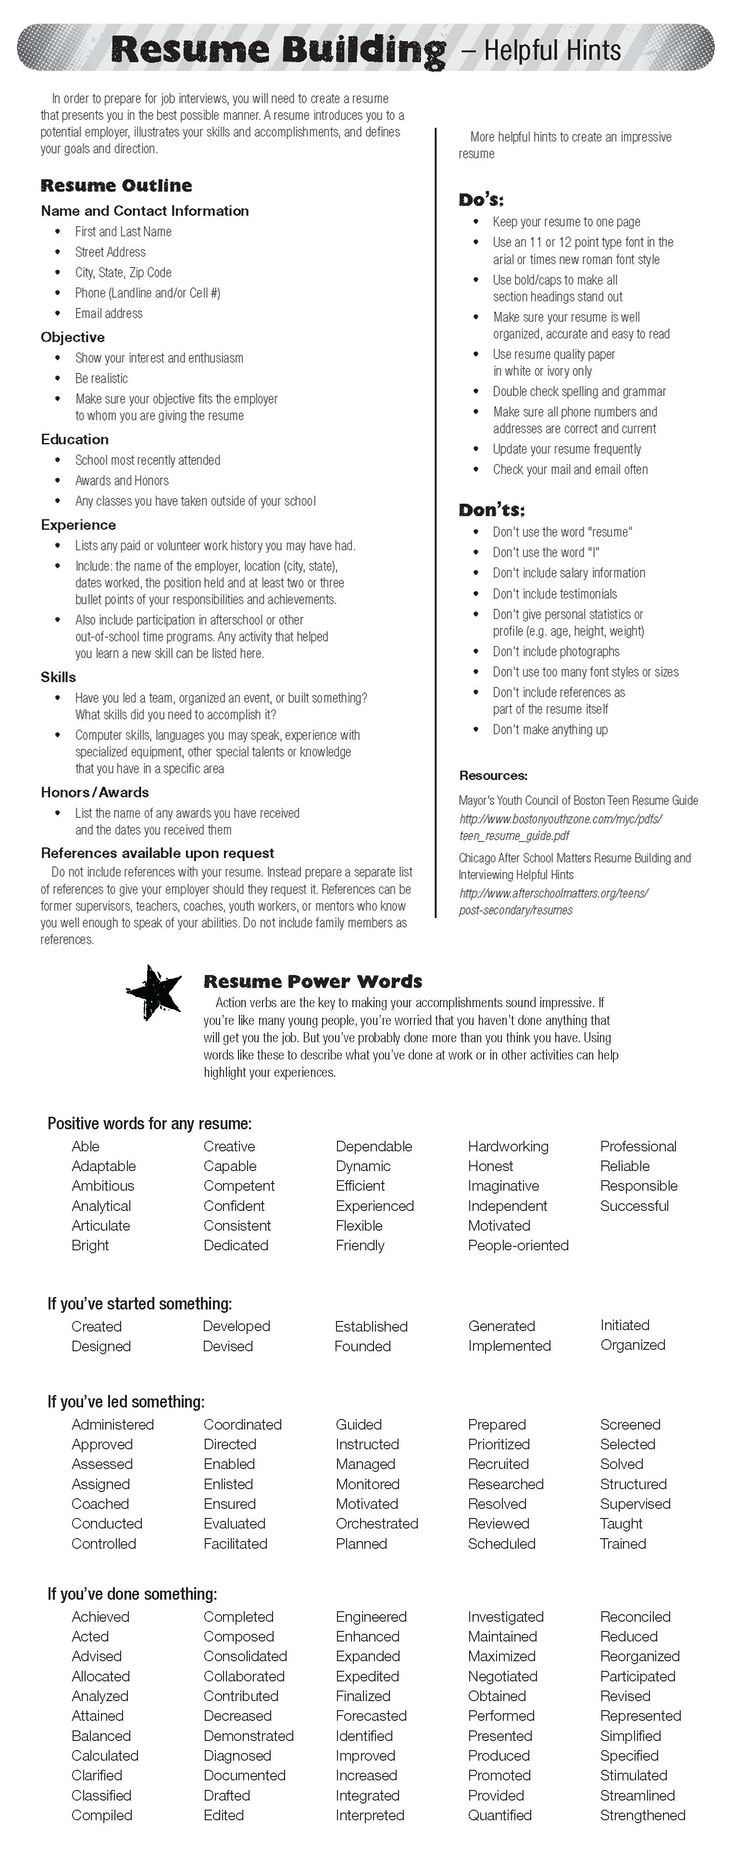 Opposenewapstandardsus  Nice  Ideas About Resume On Pinterest  Cv Format Resume Cv And  With Likable  Ideas About Resume On Pinterest  Cv Format Resume Cv And Resume Templates With Divine Engineering Resumes Also Athletic Resume In Addition Resume Mission Statement And Communications Resume As Well As Resume No Work Experience Additionally Resume Picture From Pinterestcom With Opposenewapstandardsus  Likable  Ideas About Resume On Pinterest  Cv Format Resume Cv And  With Divine  Ideas About Resume On Pinterest  Cv Format Resume Cv And Resume Templates And Nice Engineering Resumes Also Athletic Resume In Addition Resume Mission Statement From Pinterestcom